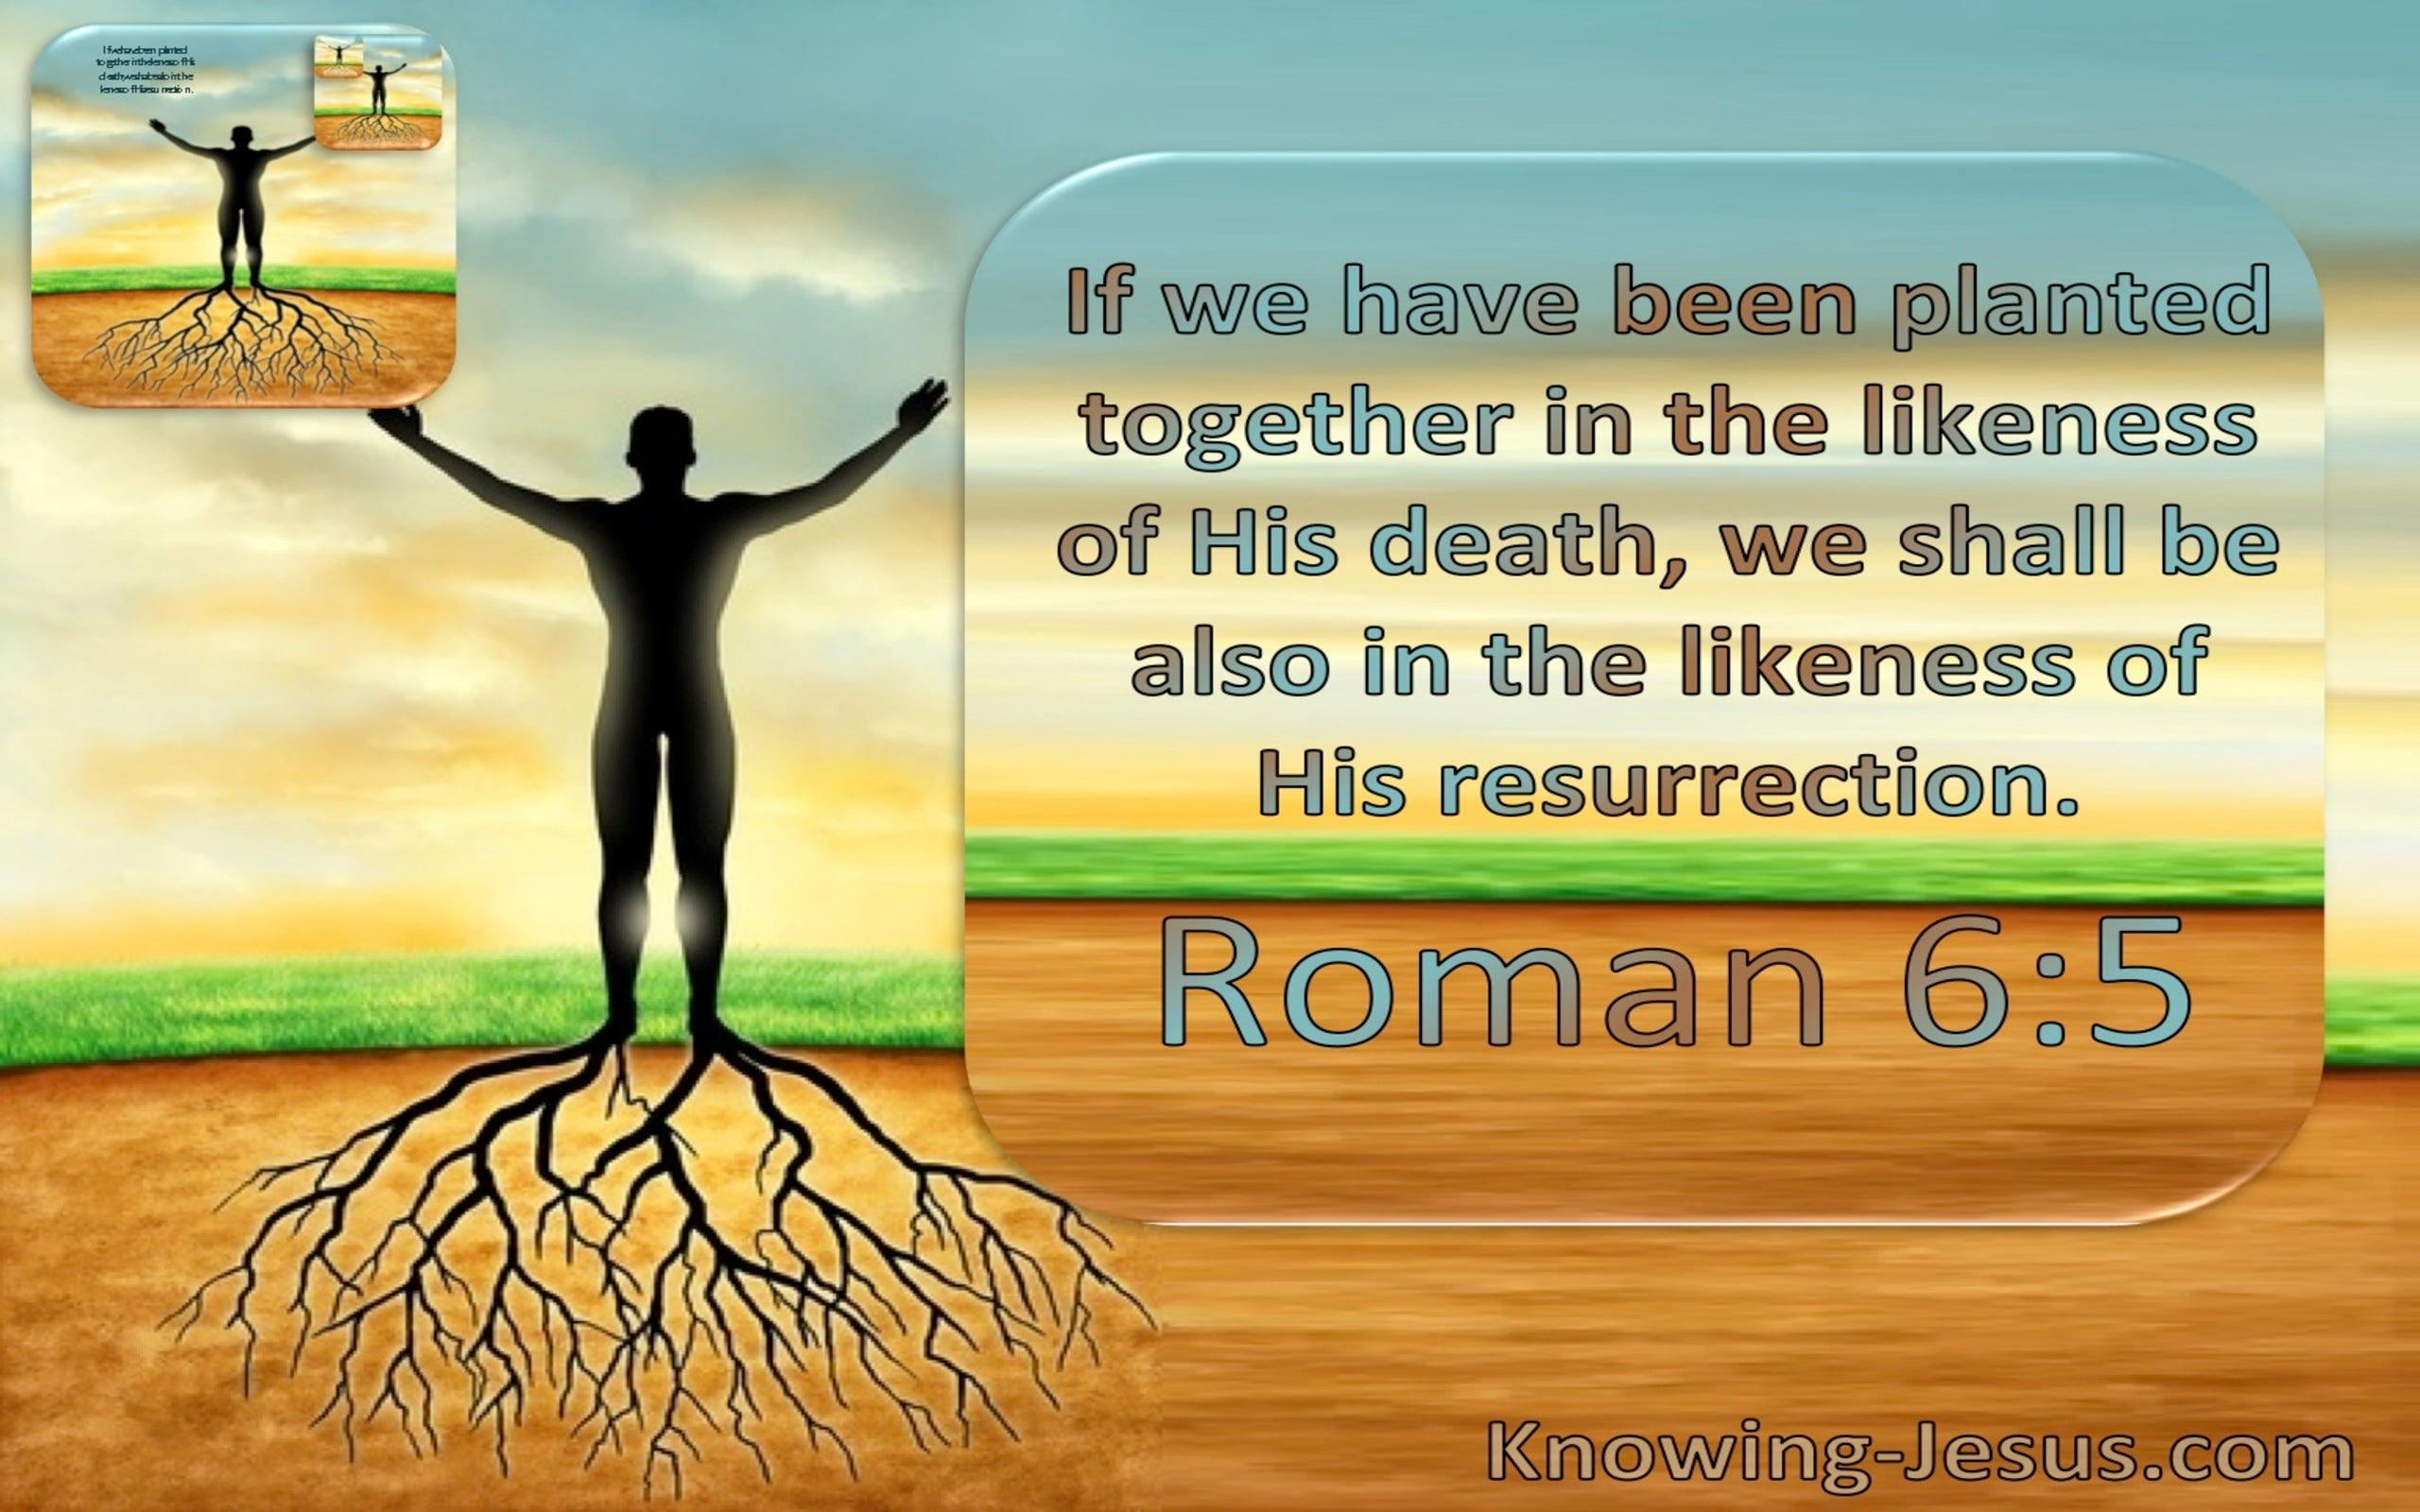 Romans 6:5 We Have Been Planted Together In The Likeness Of His Death And Resurrection (windows)01:17